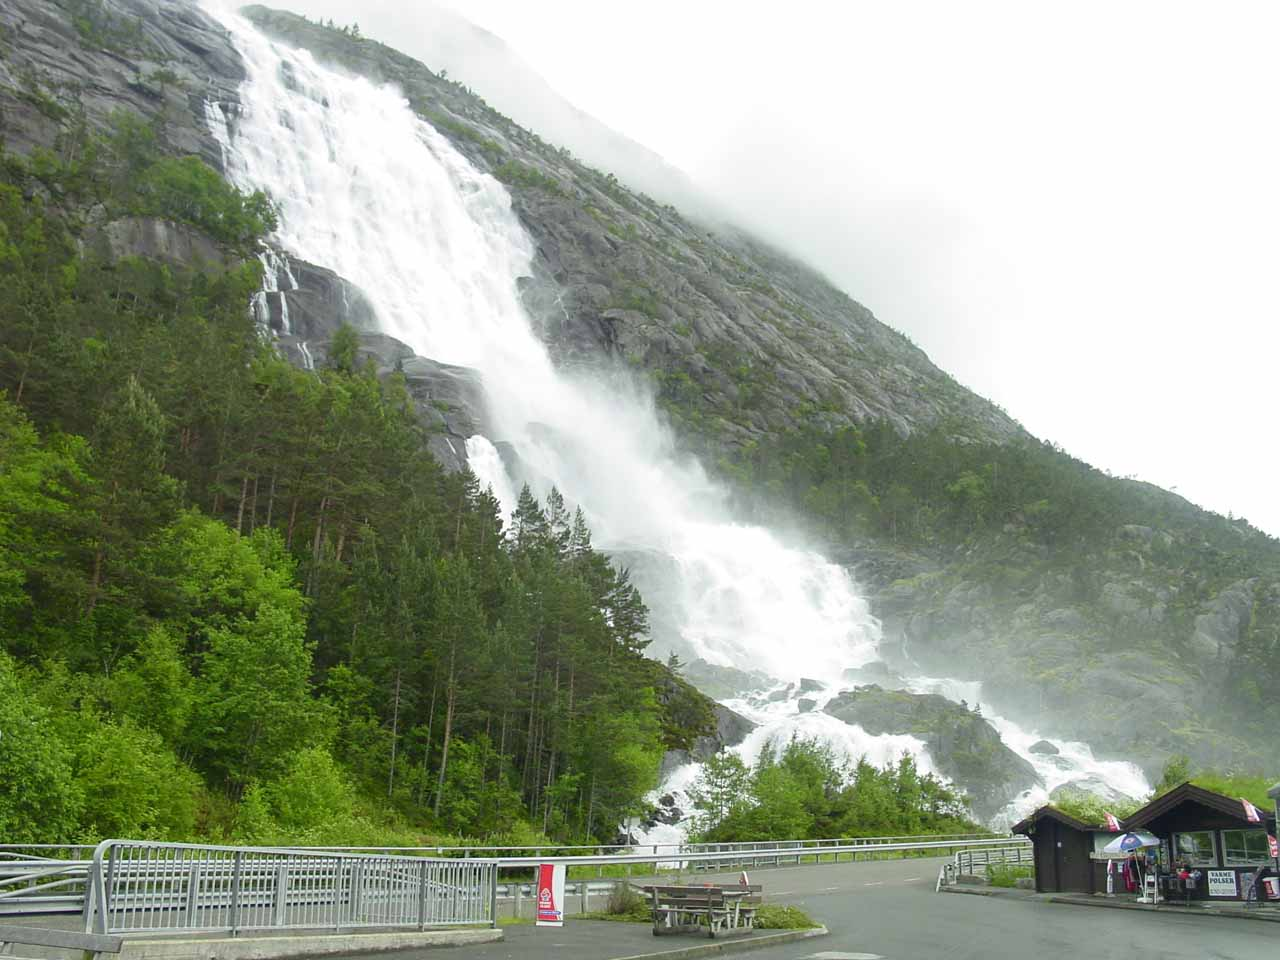 This was our view of the thundering Langfoss from the car park by its base